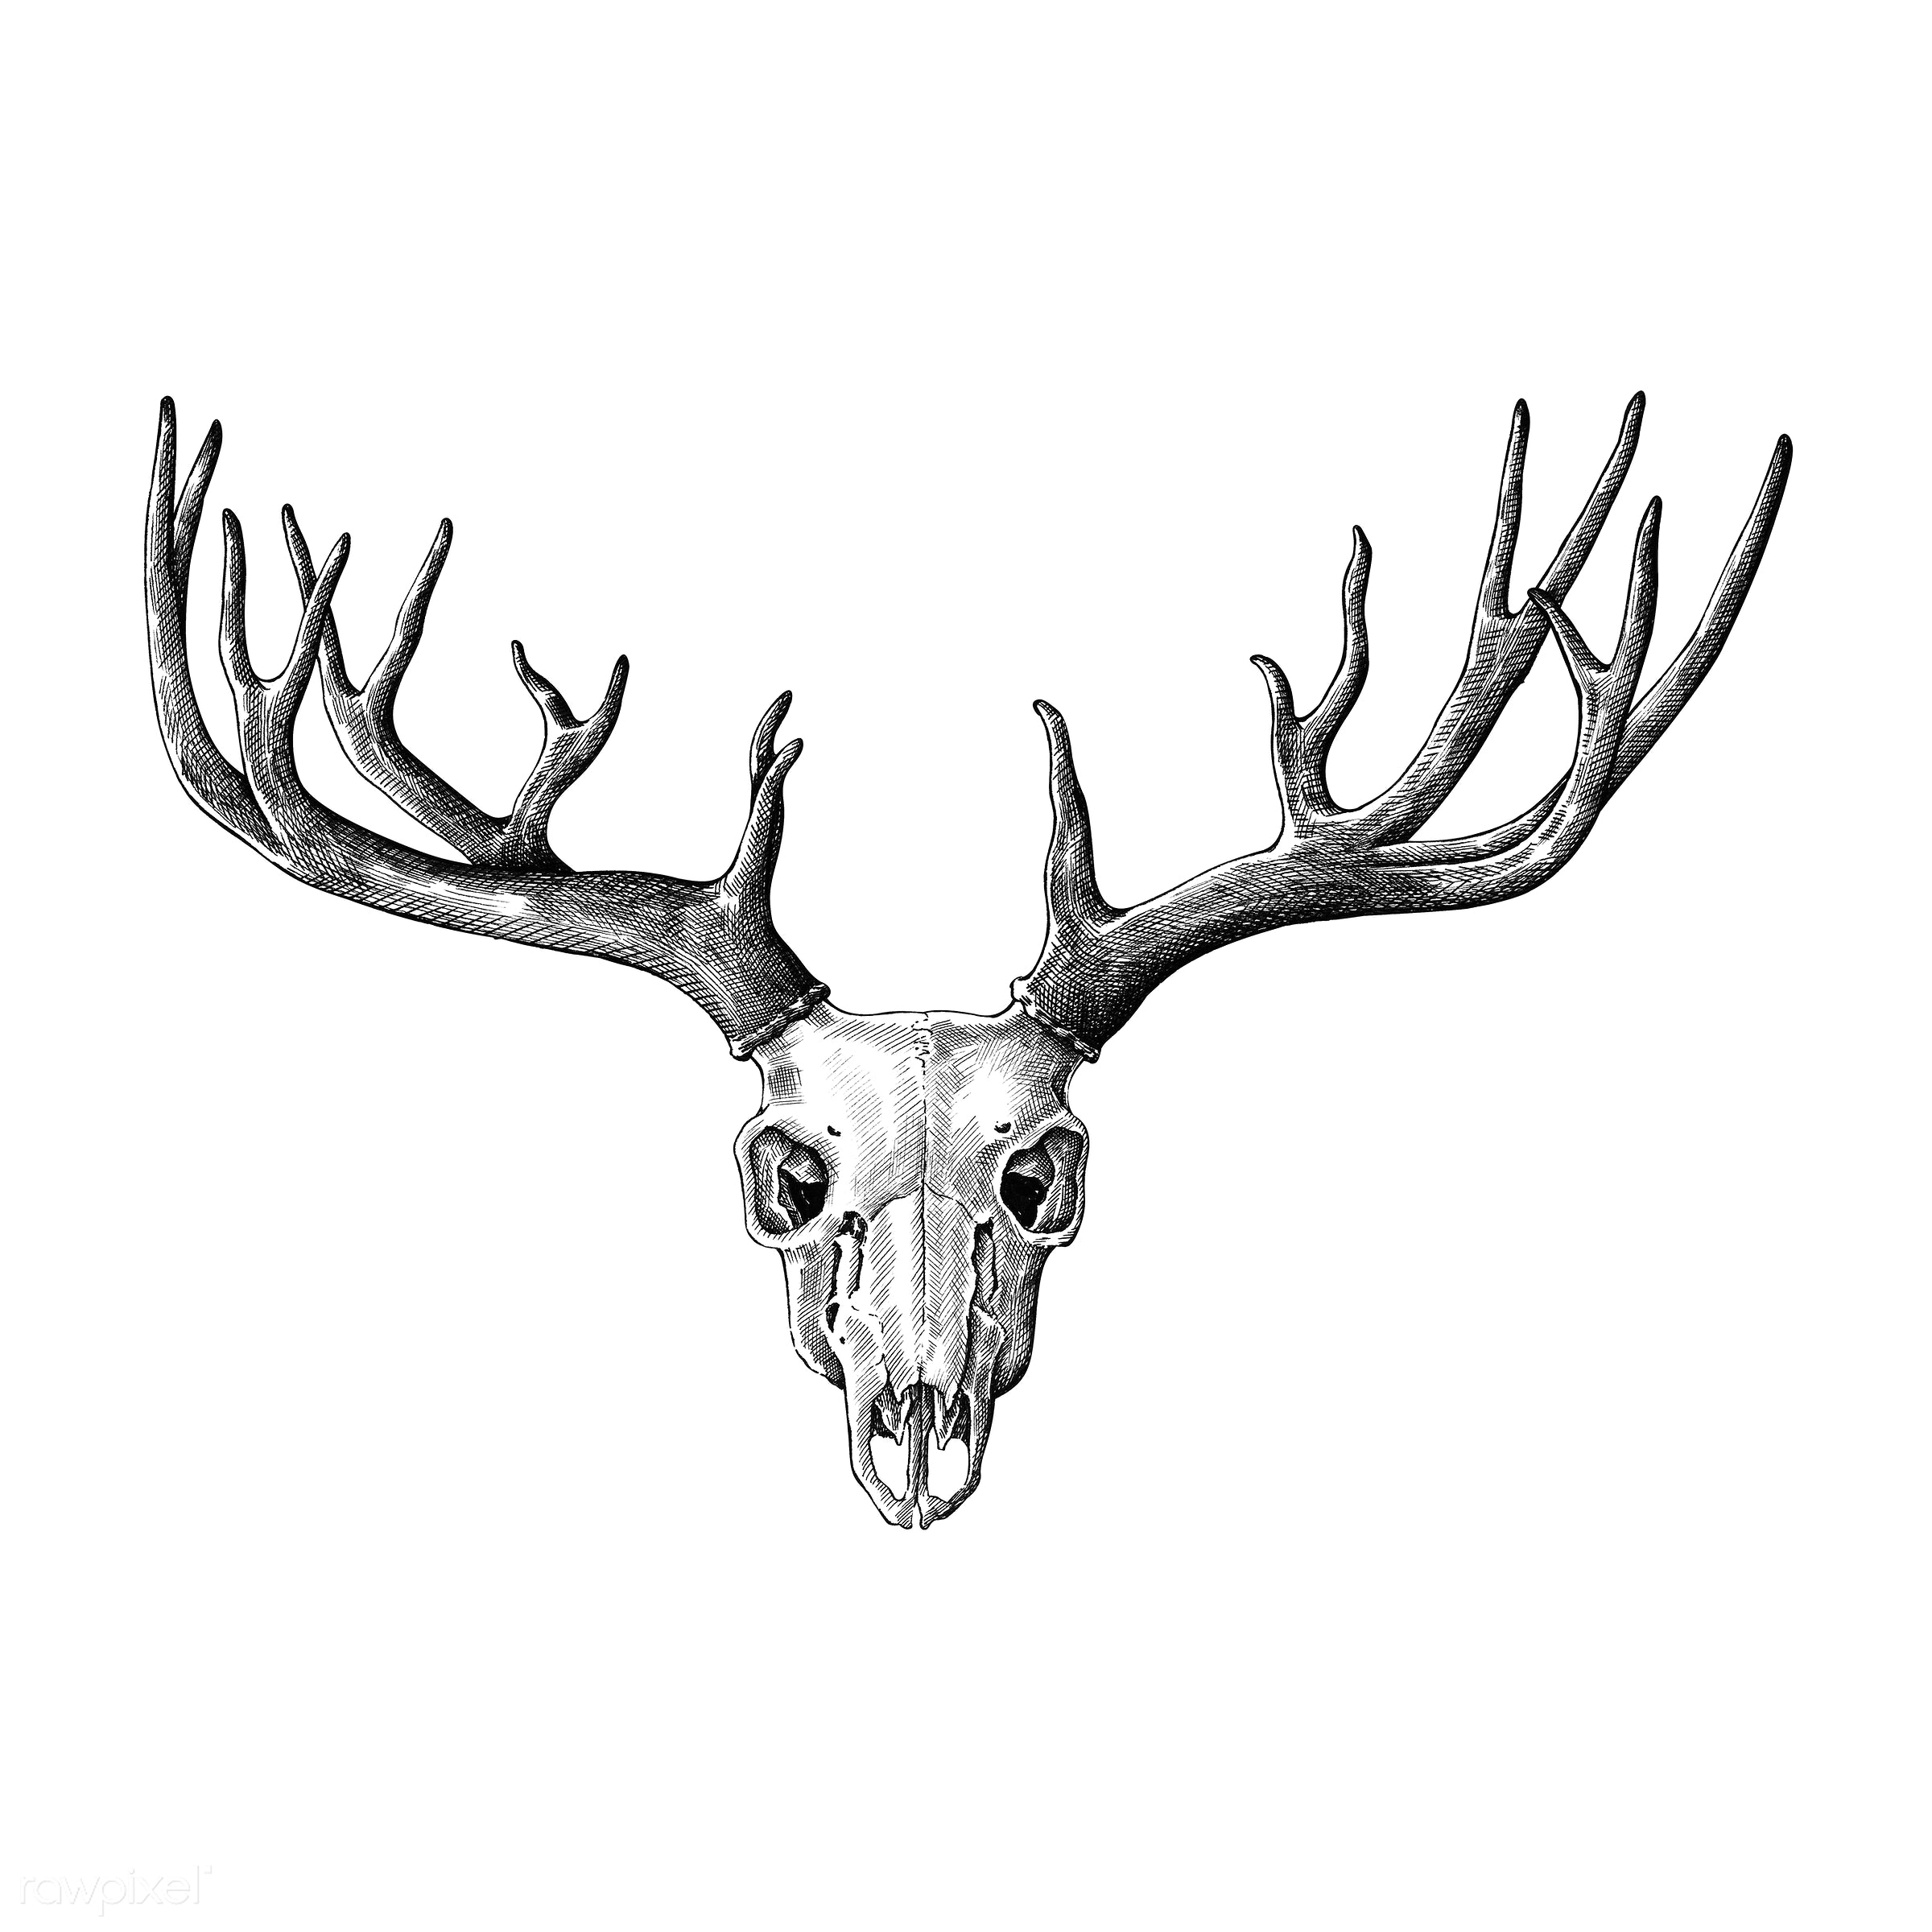 Hand drawn deer antler isolated - ID: 410948